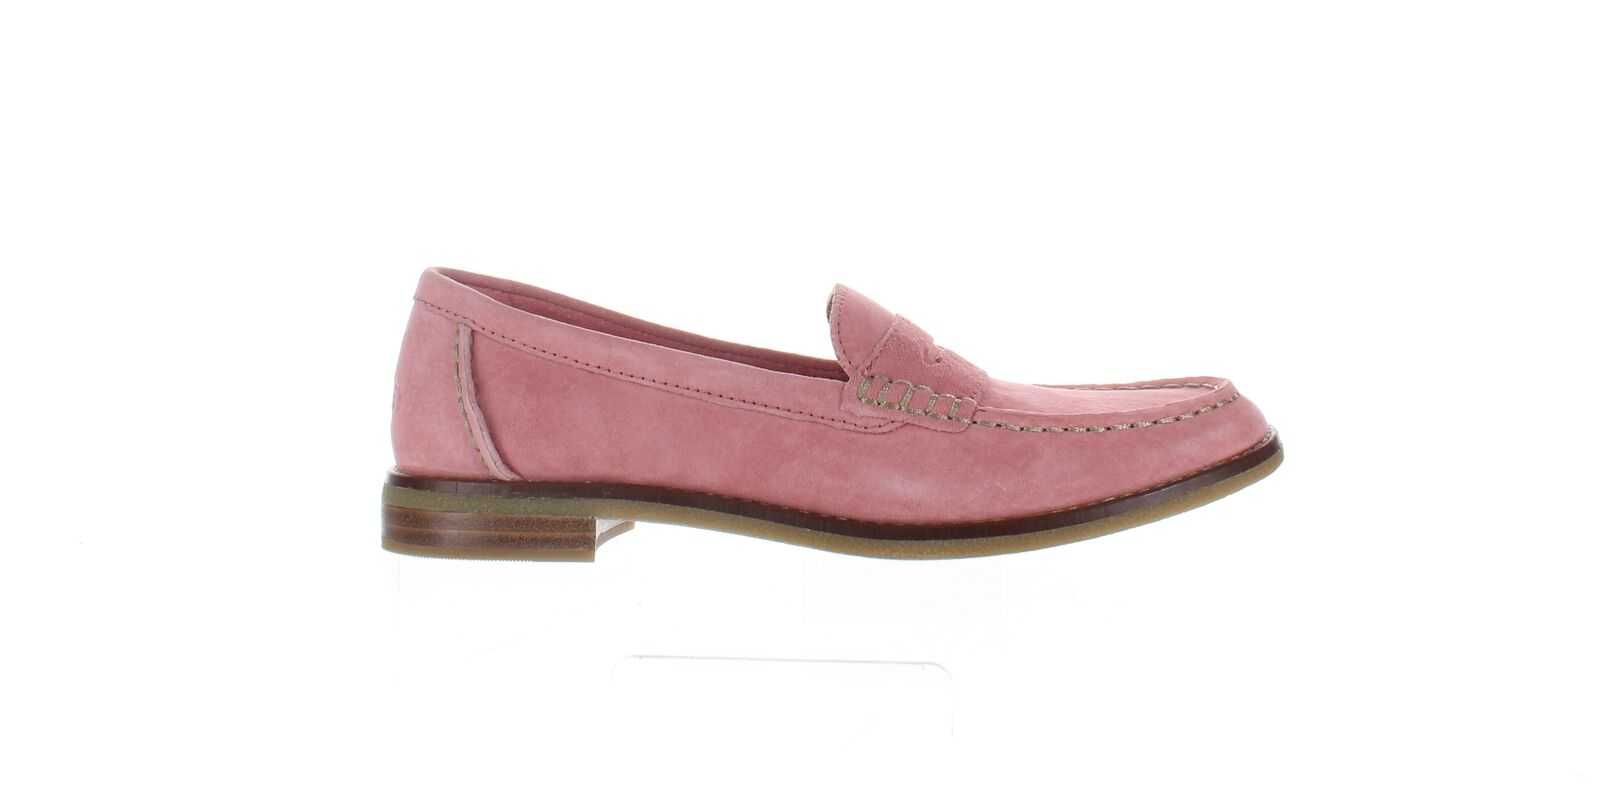 Sperry Top Sider Womens Seaport Coral Loafers Size 6 (2017040)